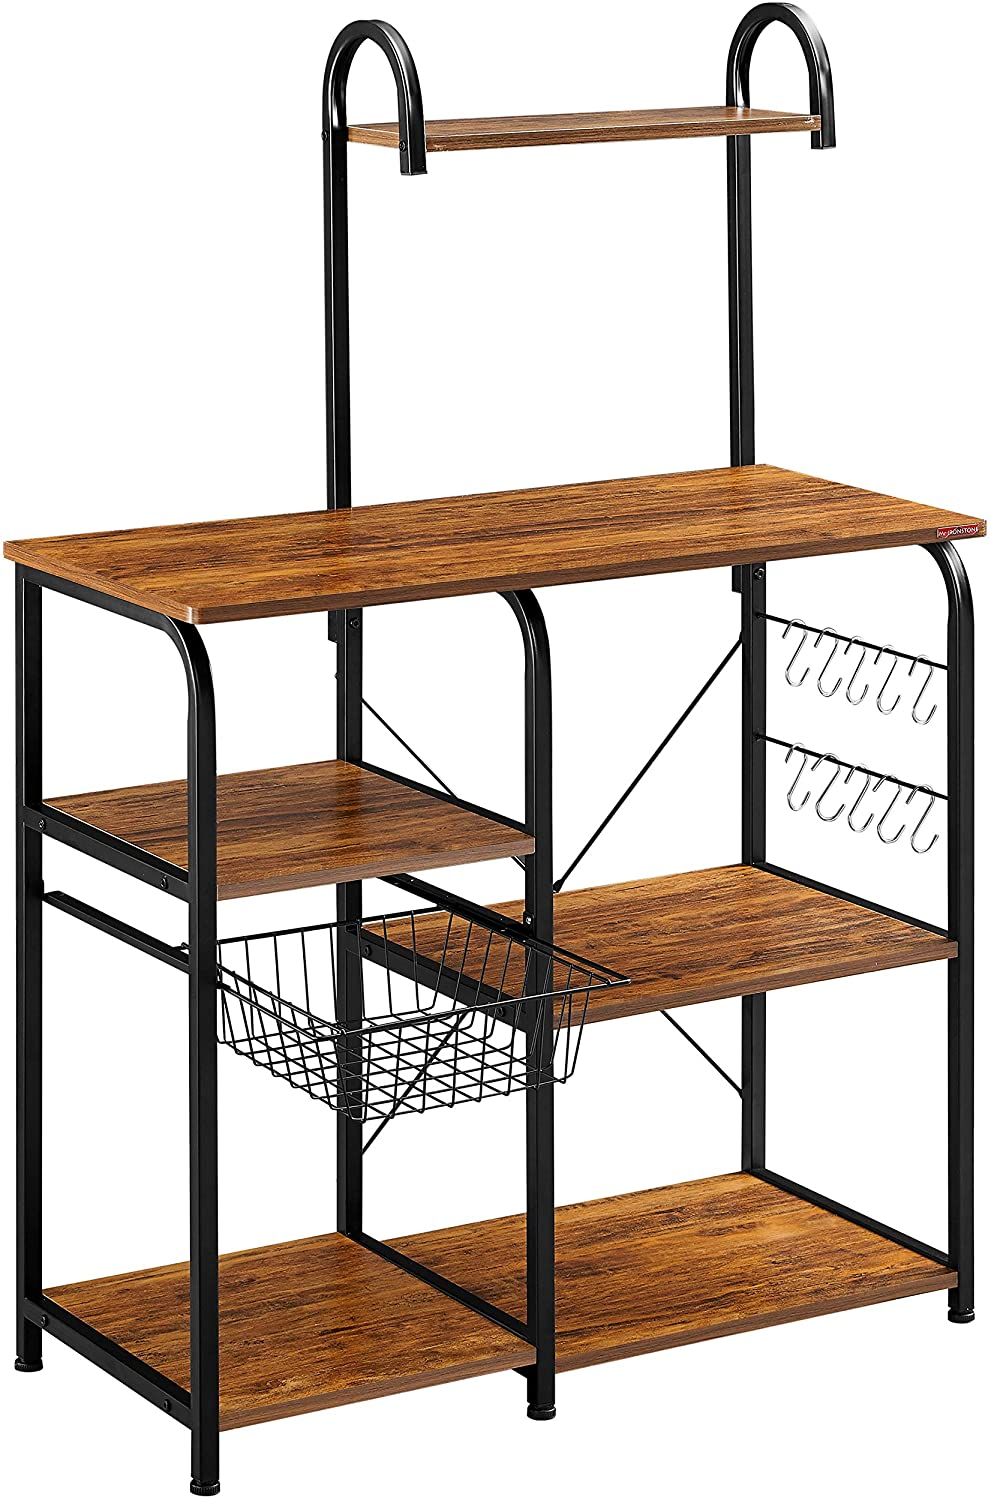 3. Mr IRONSTONE Vintage Kitchen Baker's Rack